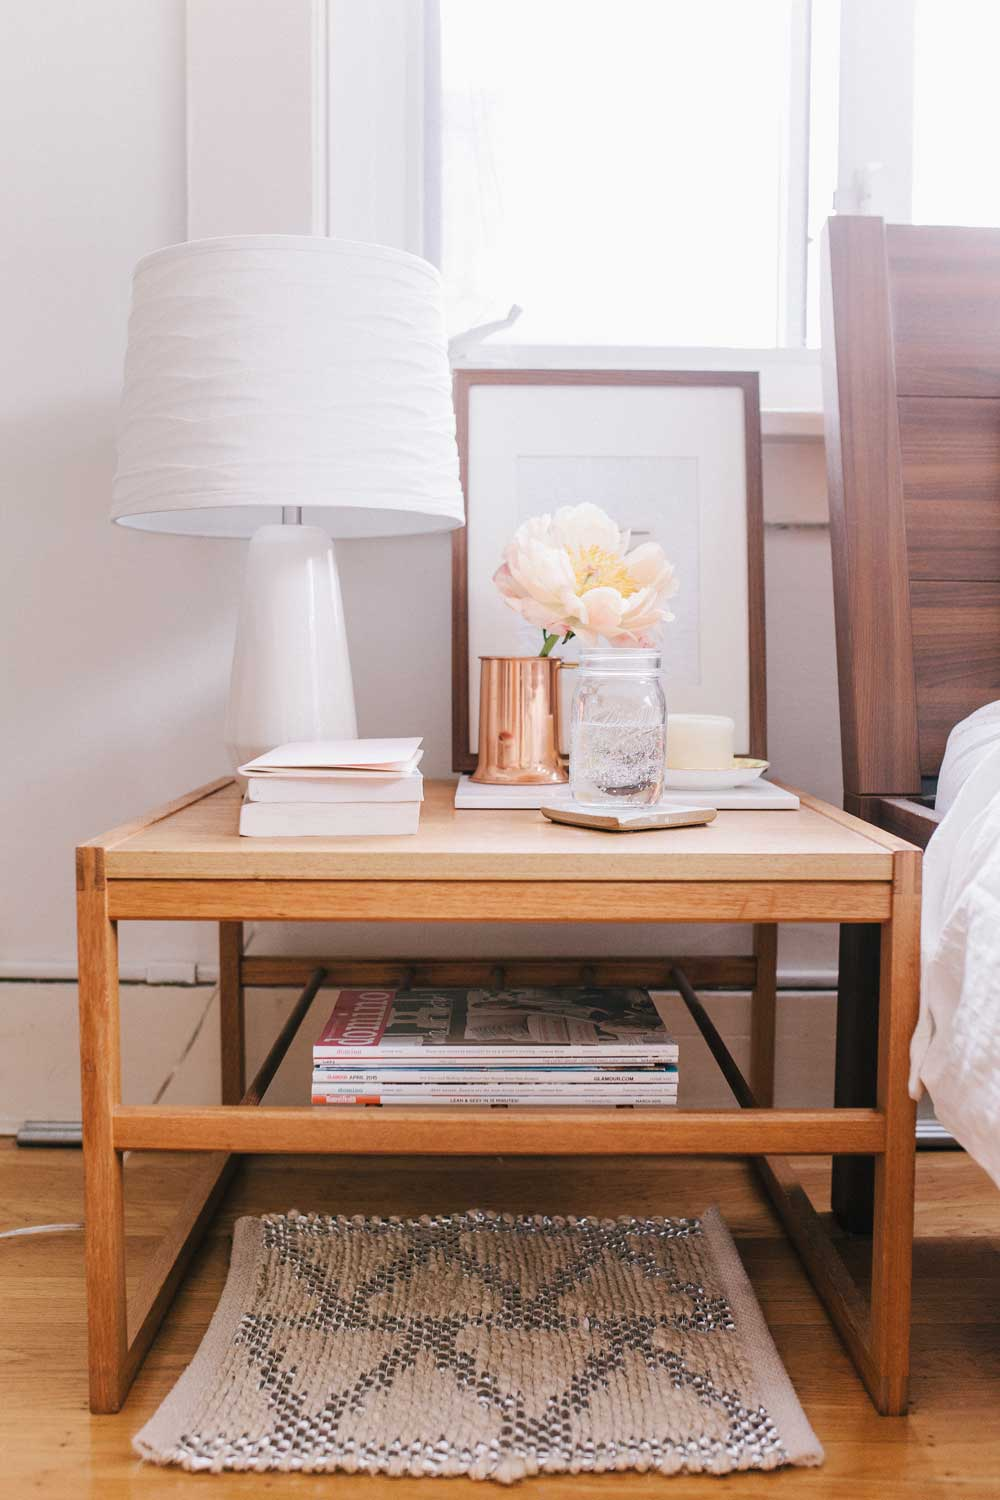 A Stylist's Vintage Hotel Home in Vancouver, on Design*Sponge